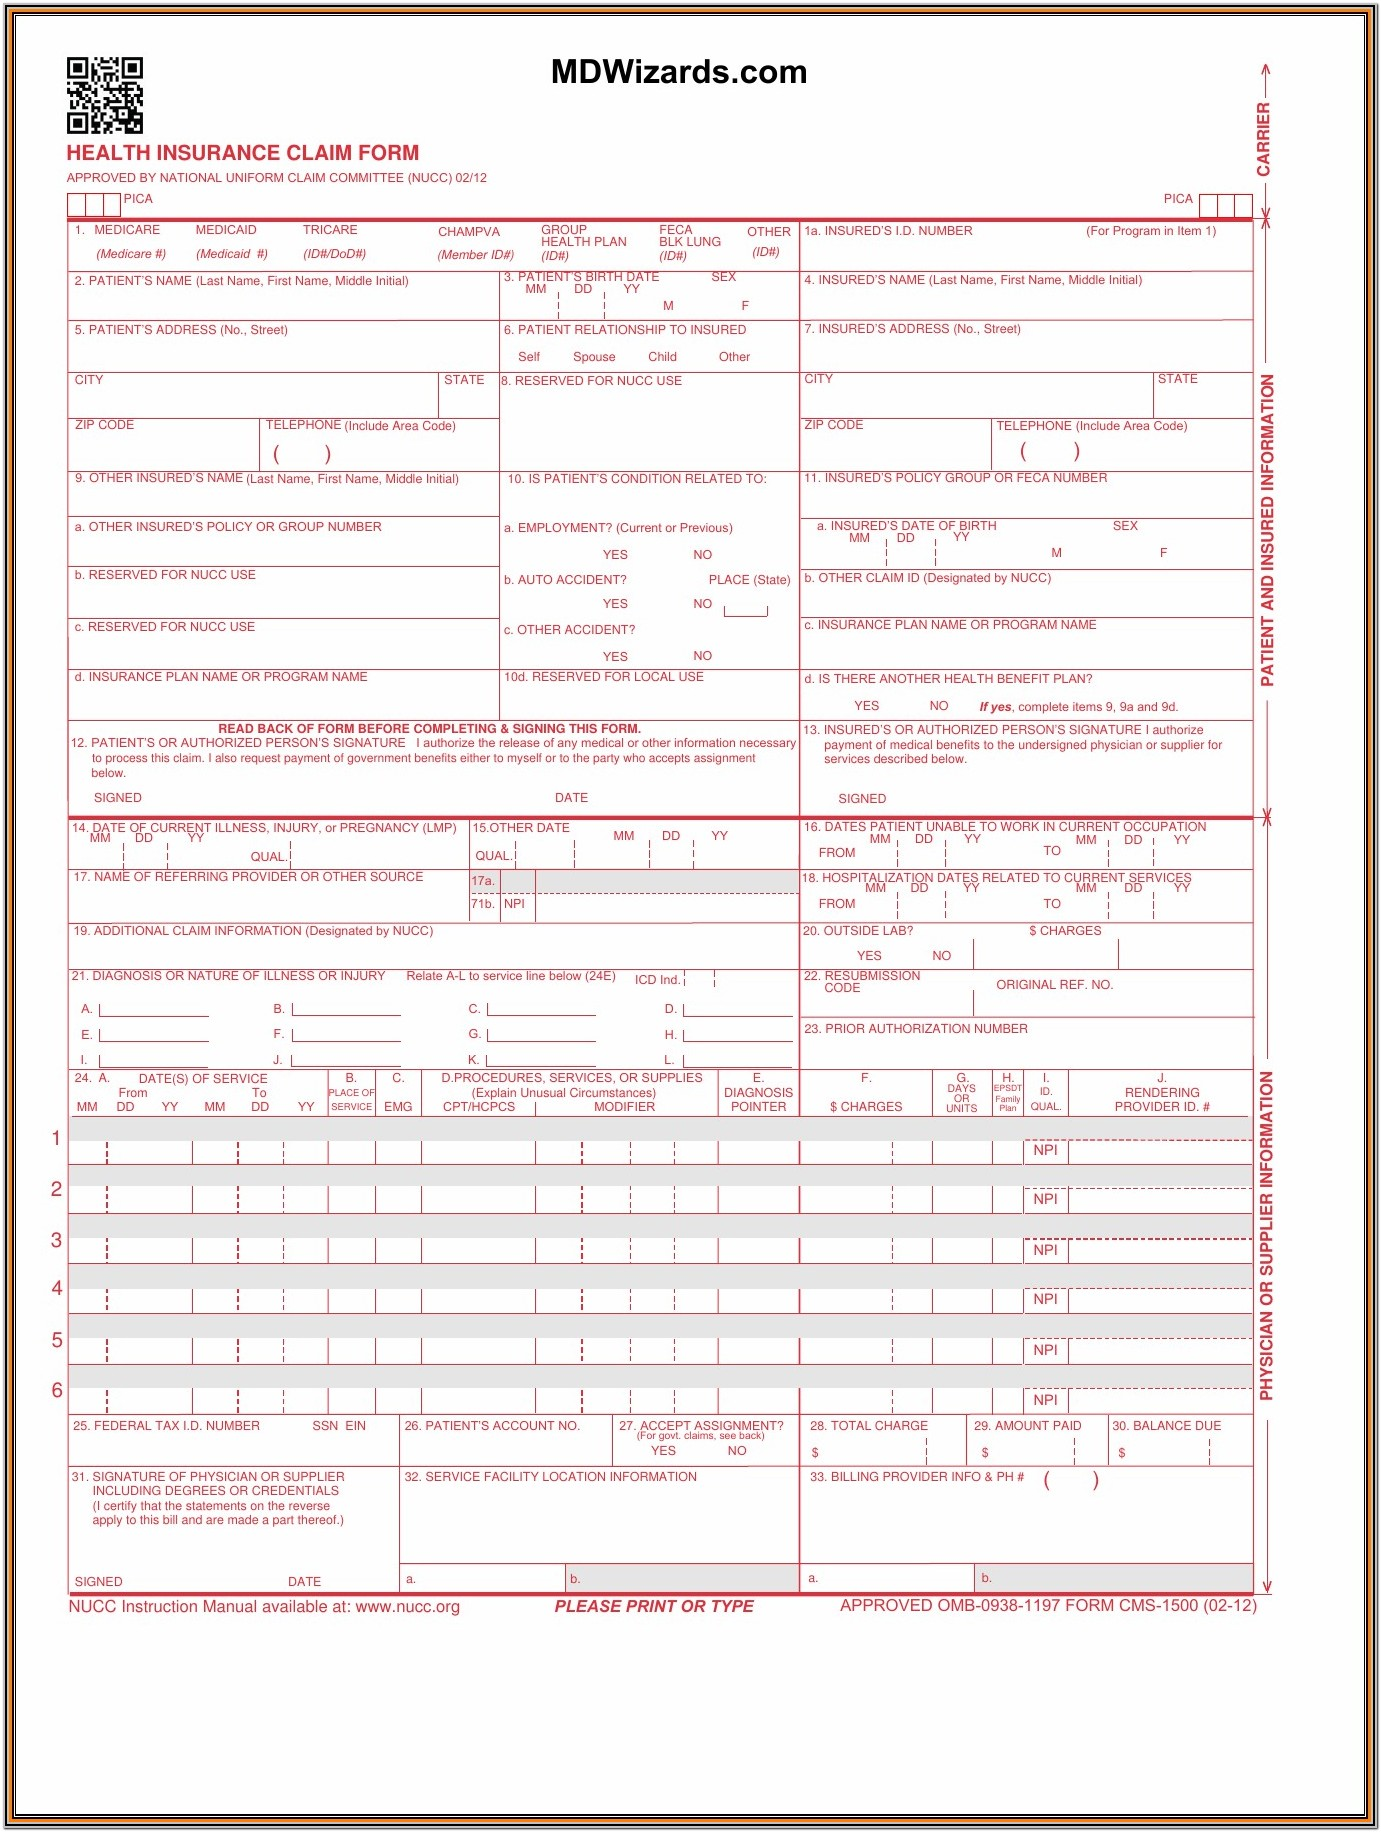 Medicare 1500 Form Instructions